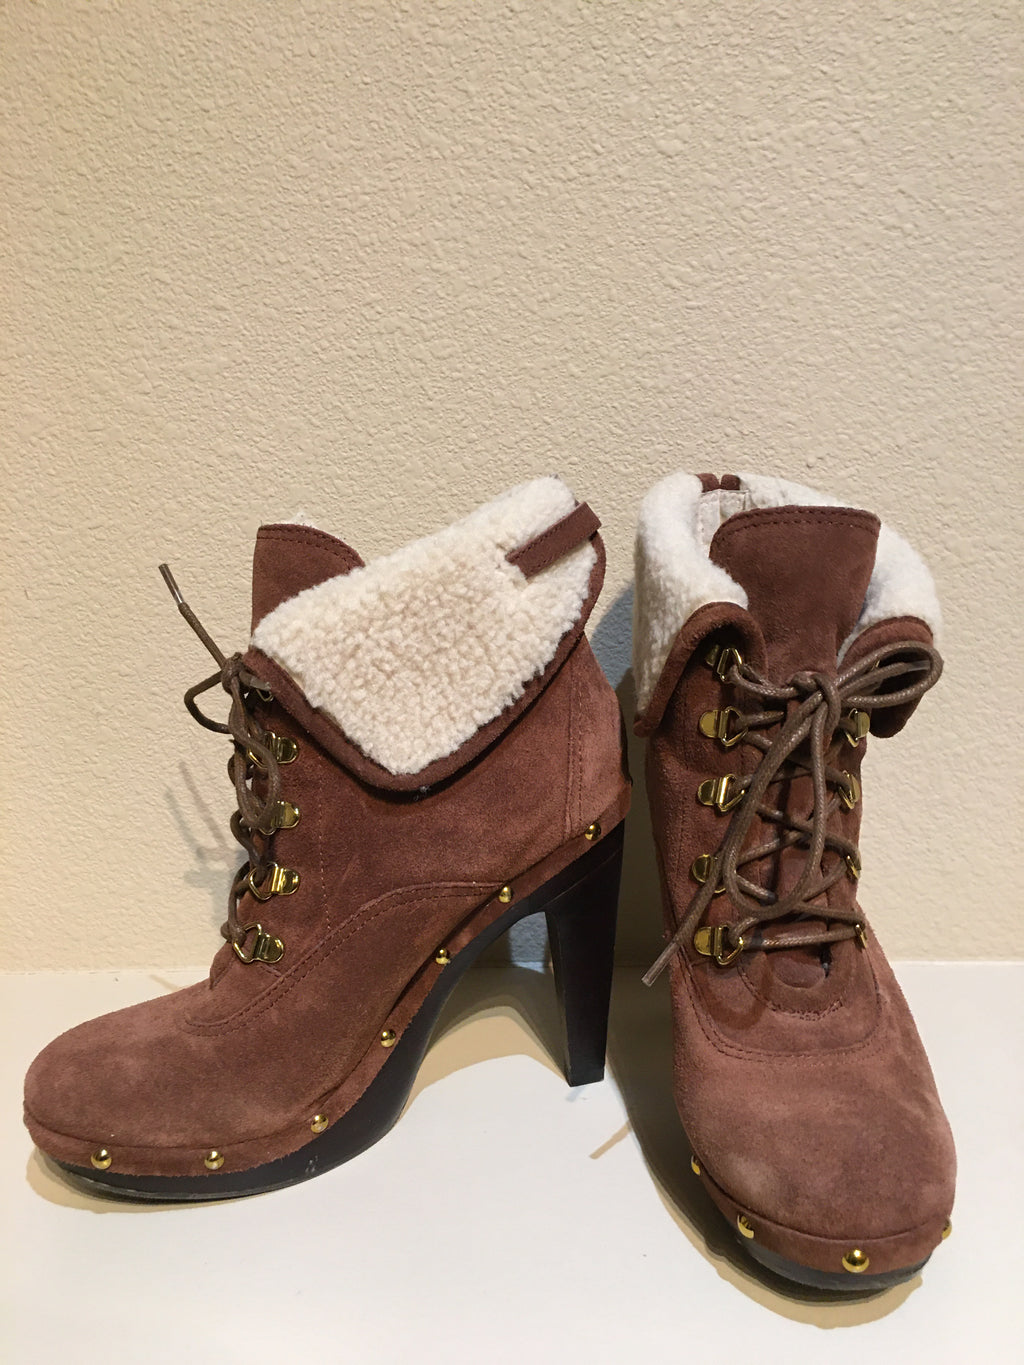 BCBG Paris Shearling Lace Up Bootie: Size 8.5